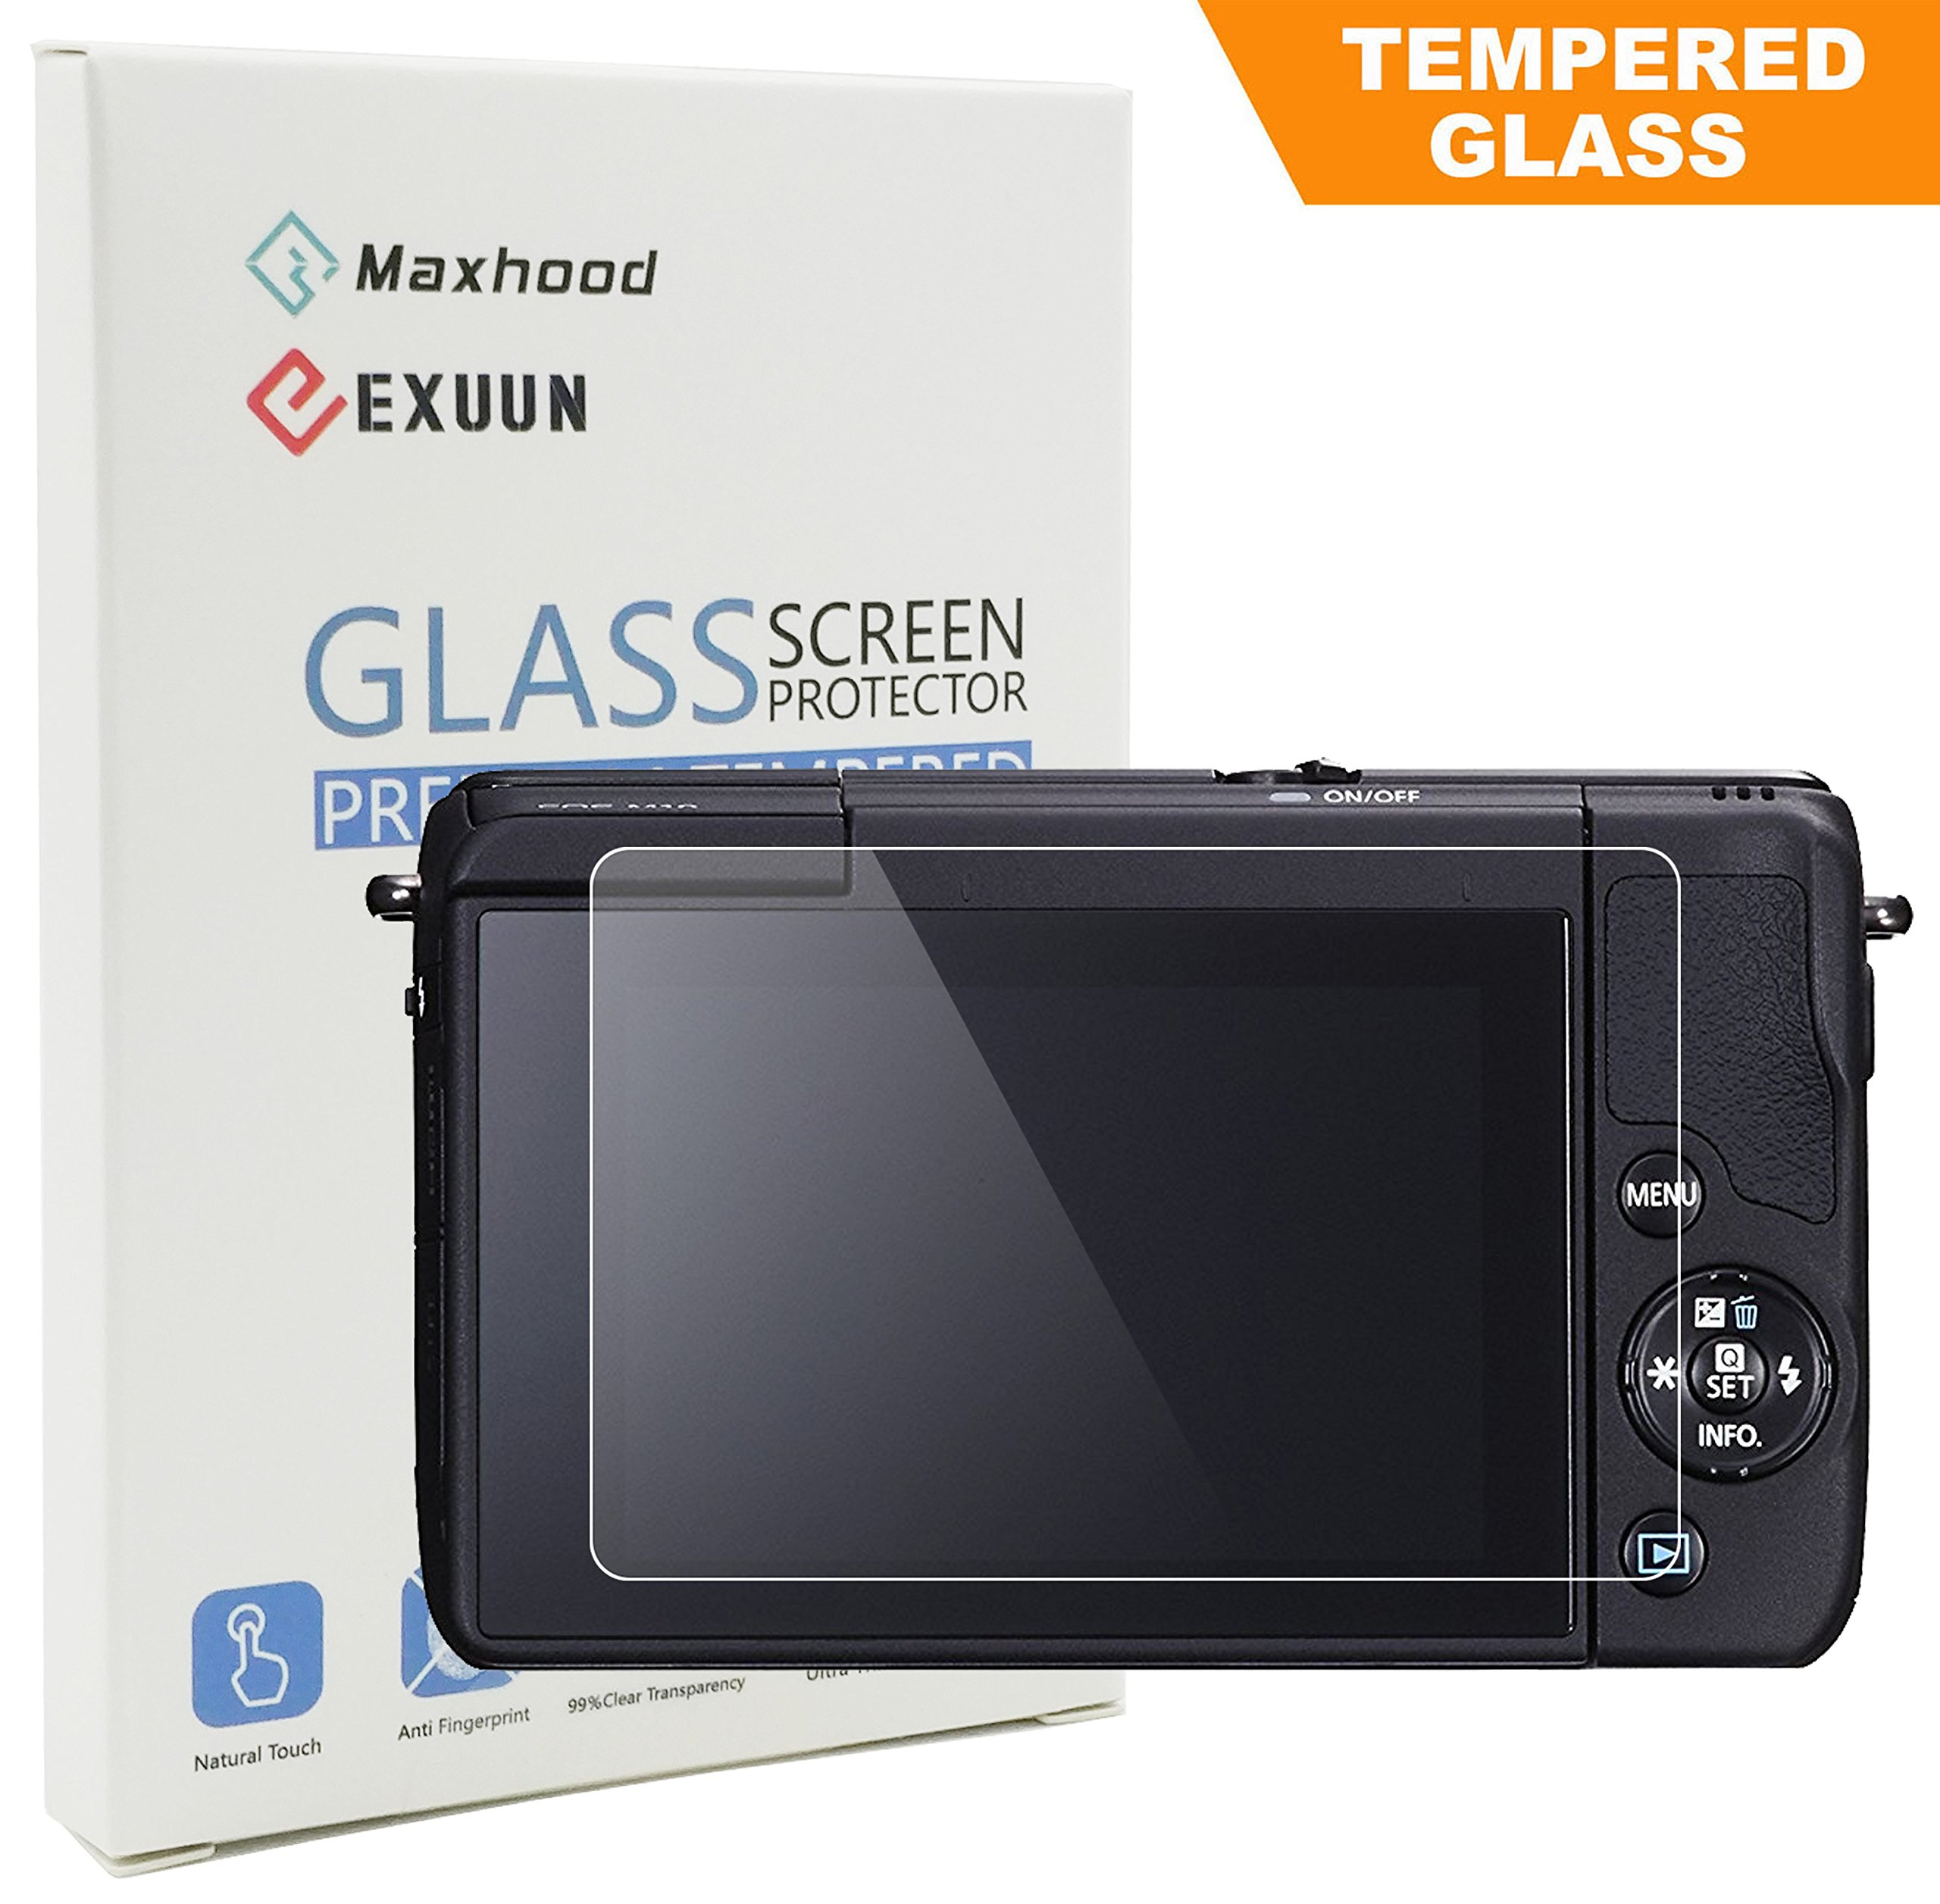 Canon EOS M3 / M5 / M10 / 100D / G1 X Mark II Tempered Glass Screen Protector, Poyiccot Optical 9H Hardness 0.3mm Ultra-Thin DSLR Camera LCD Tempered Glass